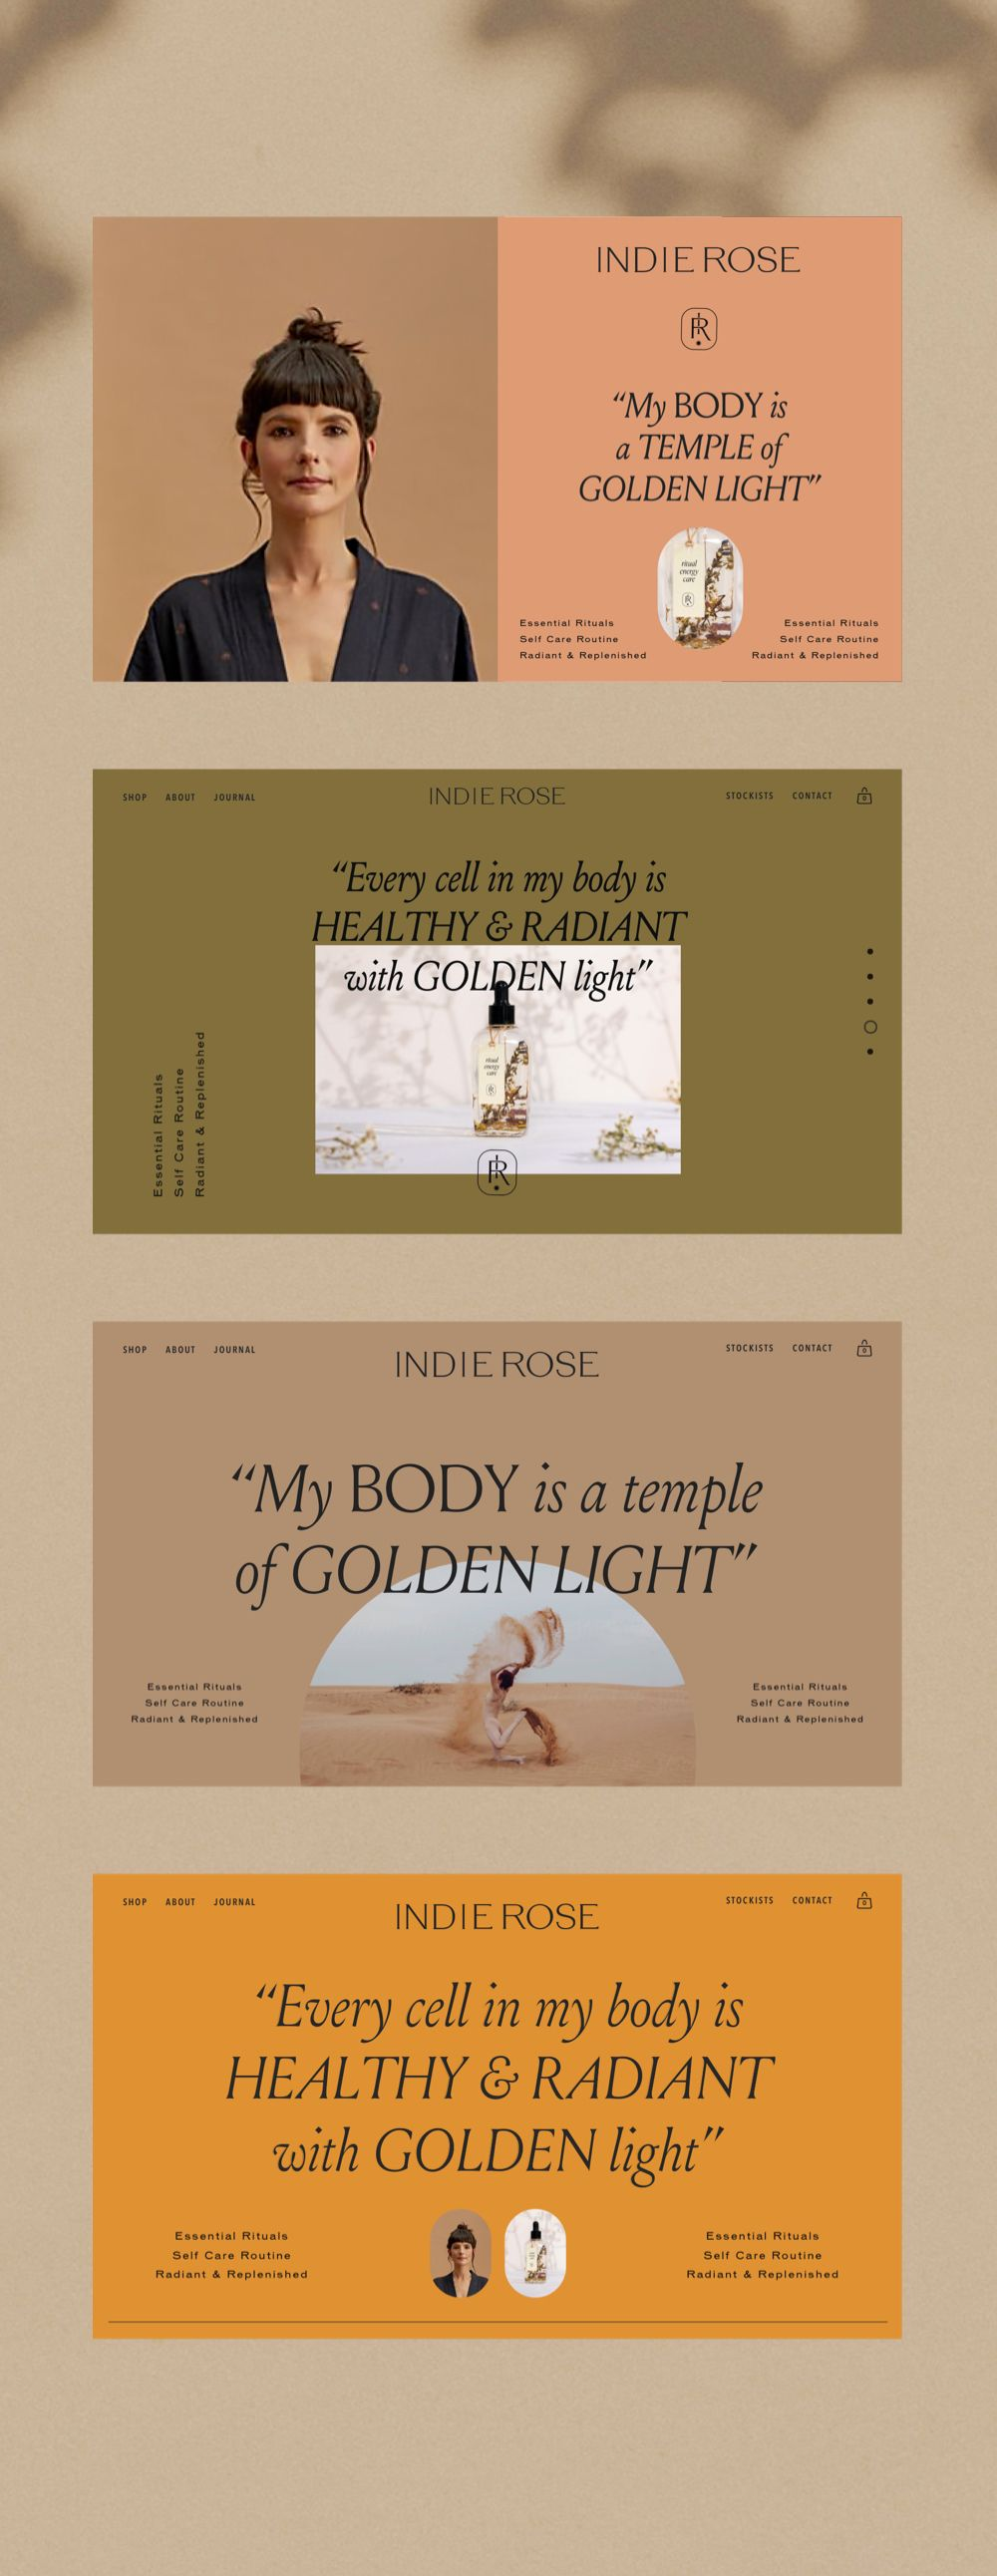 Beautiful design & branding | Marketing your ethical & conscious business